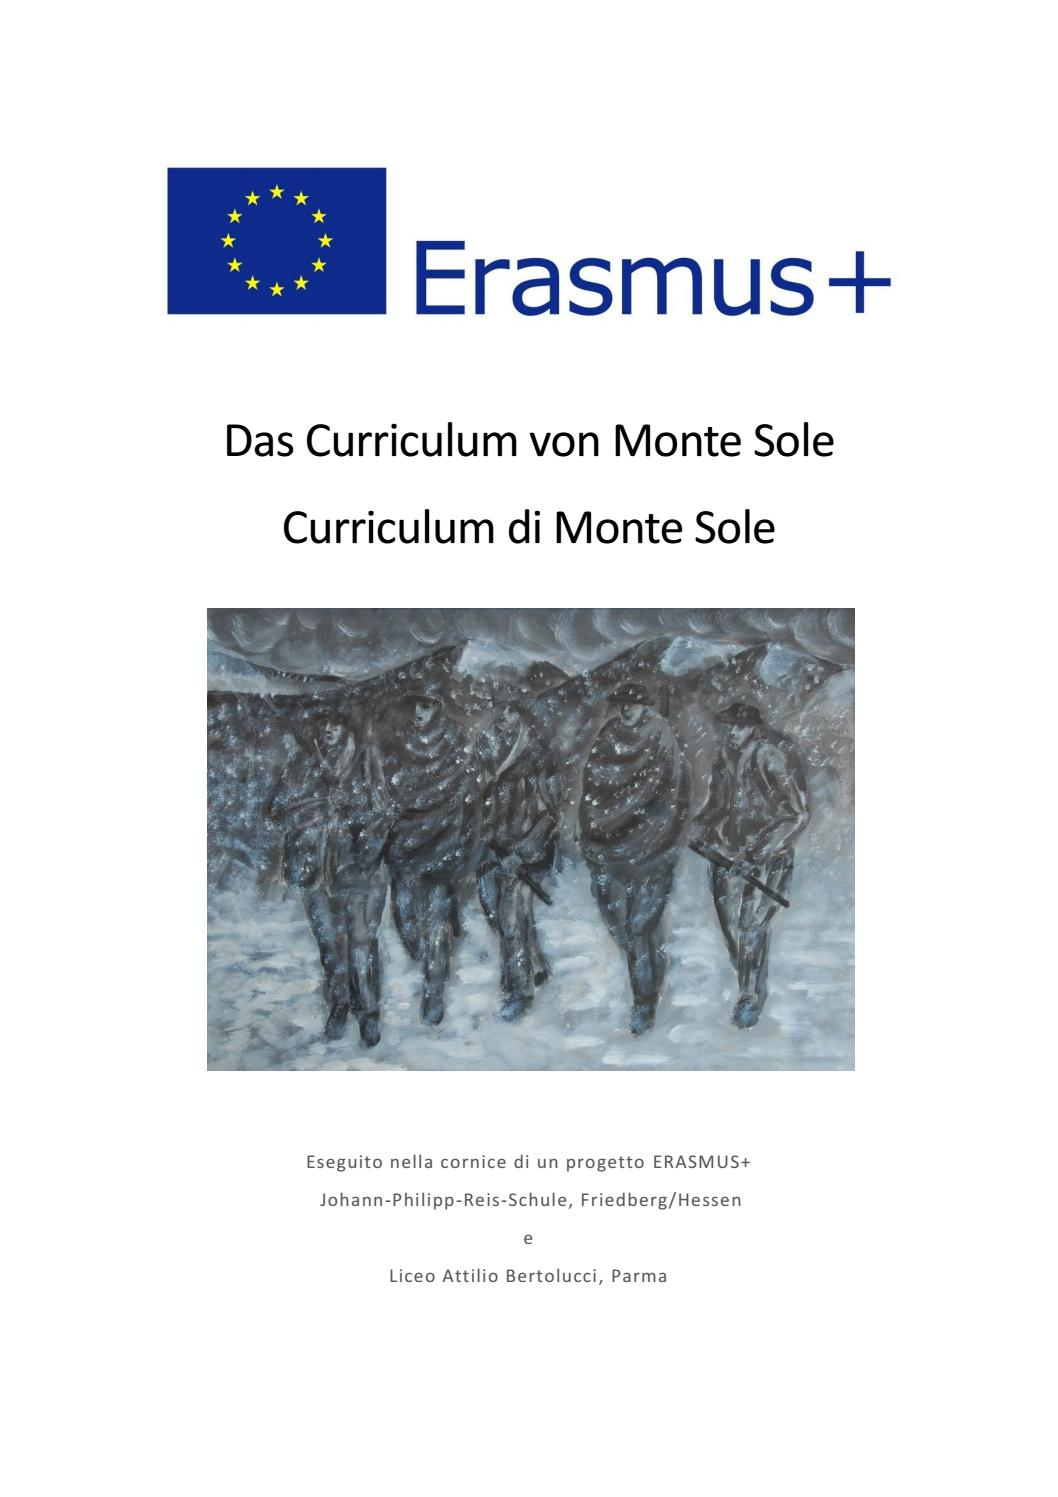 Curriculum Monte Sole Italian Version By Liceo Attilio Bertolucci